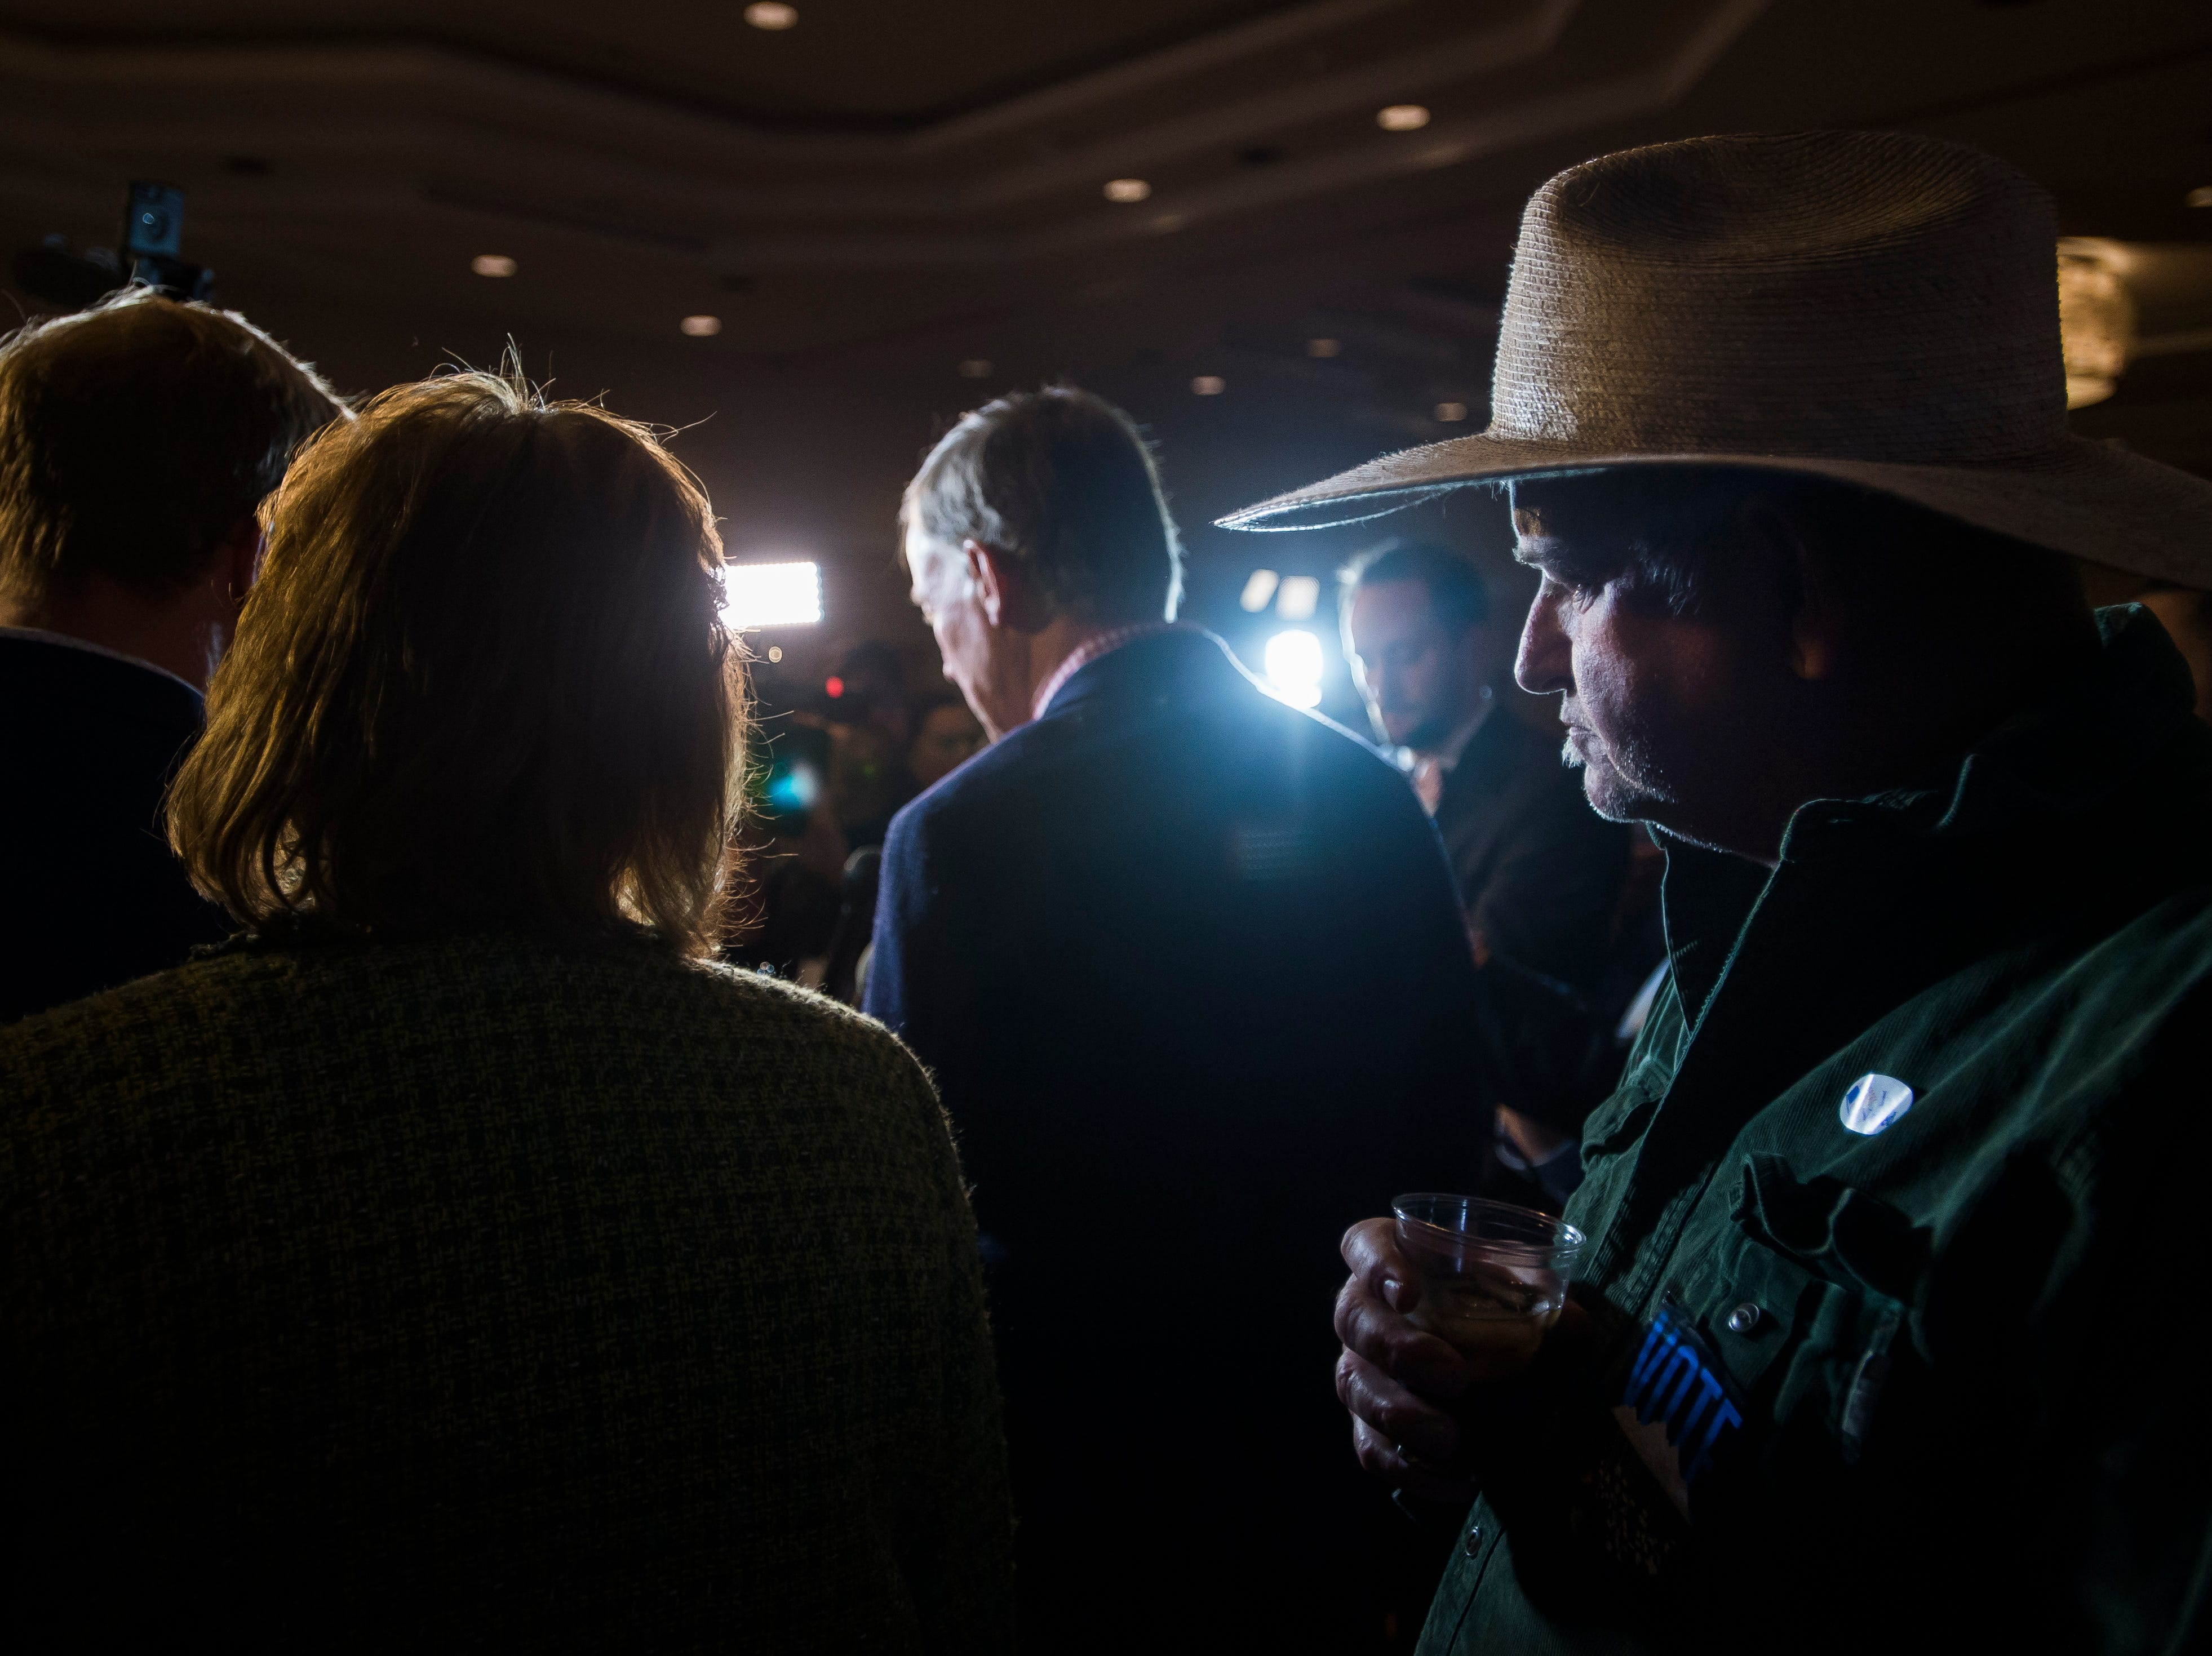 Fort Collins resident Lan Grant, right, listens to Colorado Governor John Hickenlooper as he talks with members of the media before an election watch party for Democratic candidate for Colorado governor Jared Polis on Tuesday, Nov. 6, 2018, at the Westin Denver Downtown hotel in Denver, Colo.